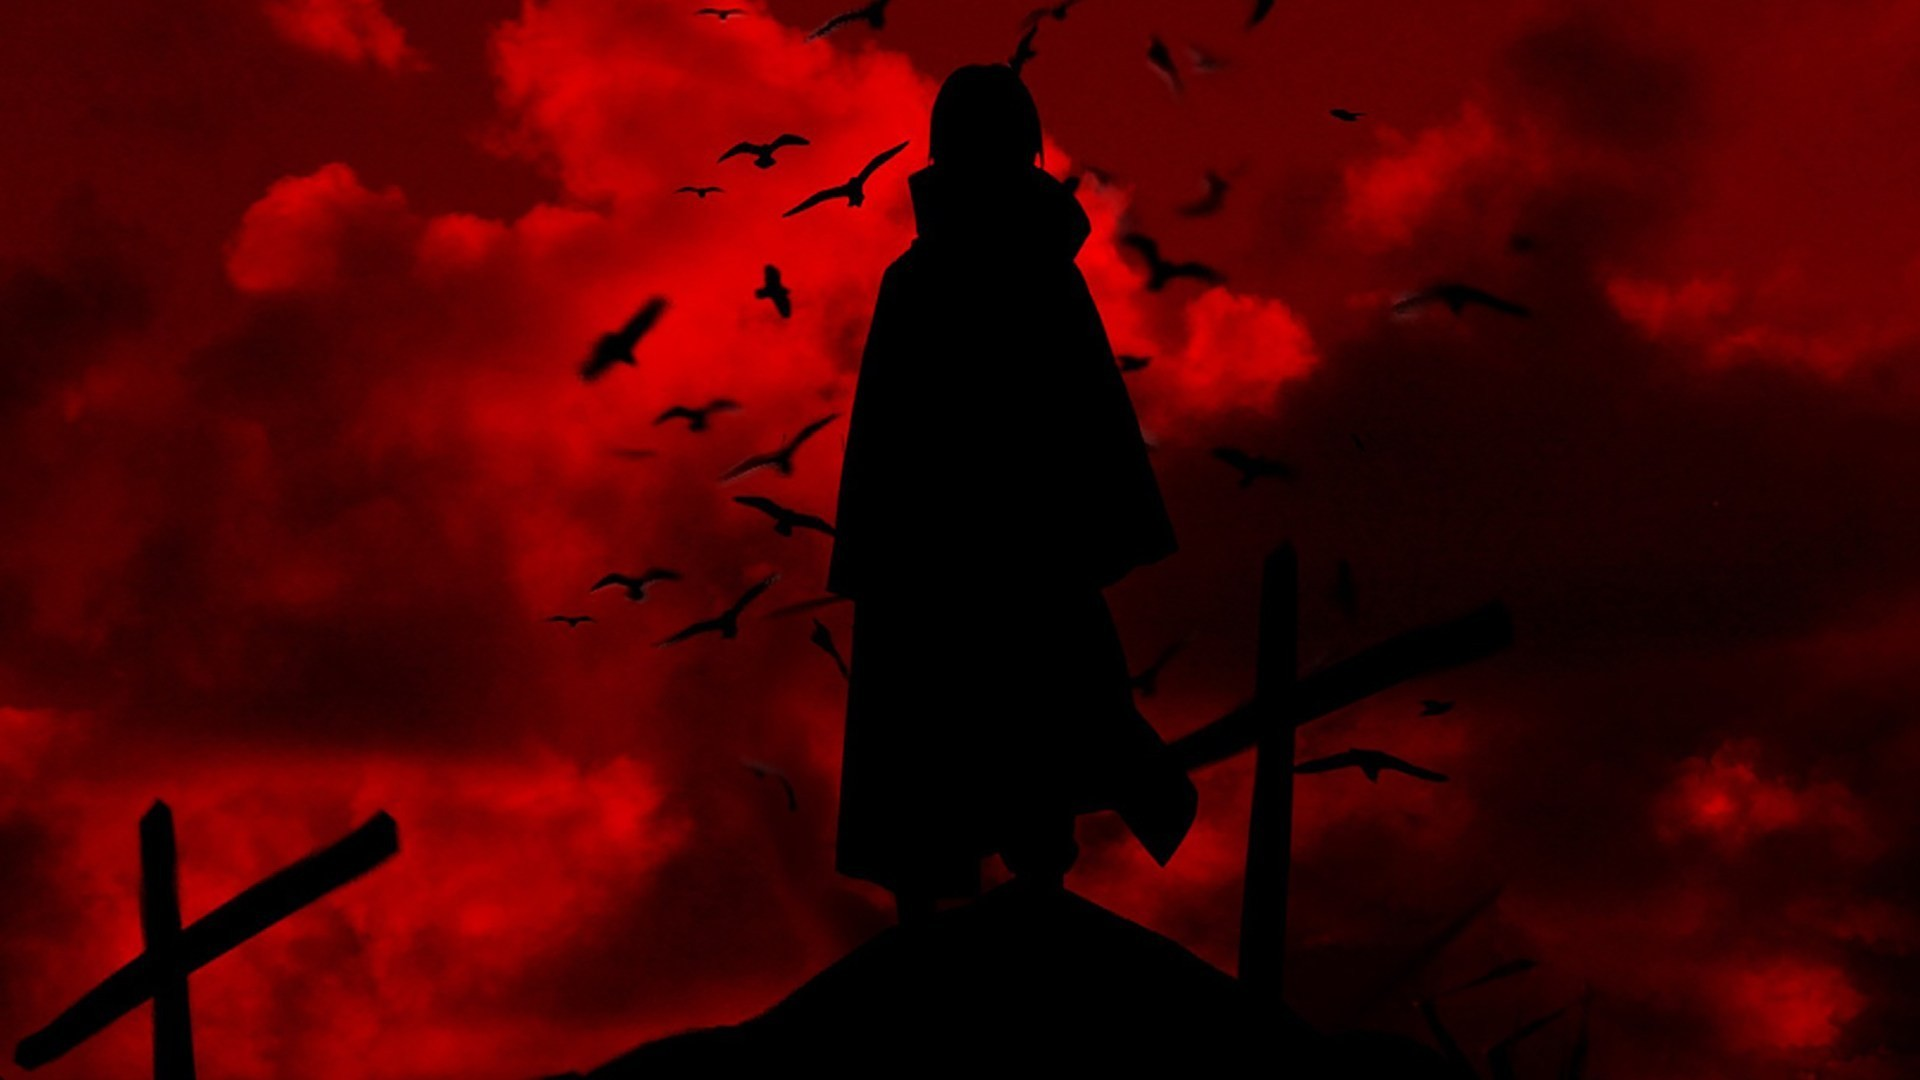 Akatsuki Background 67 Pictures